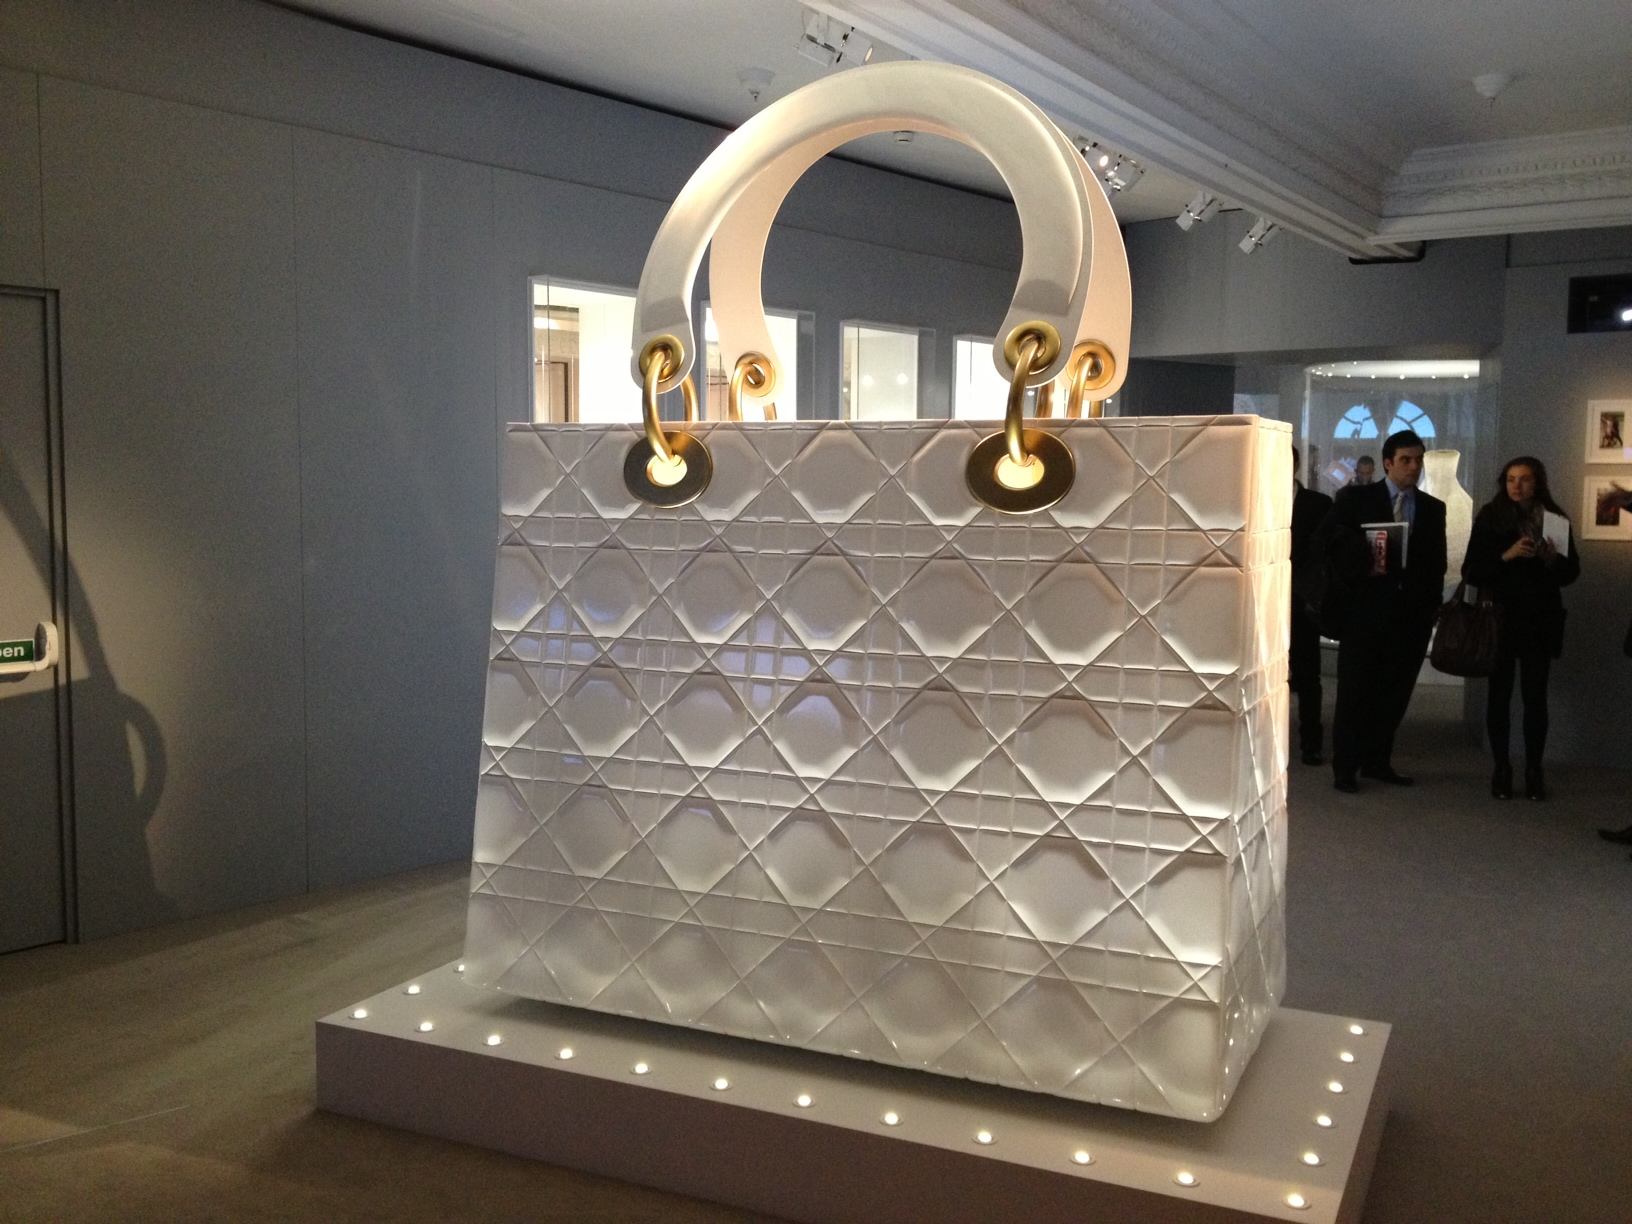 The quilted, giant lady Dior handbag is used as a screen to project images and videos of how the bag is crafted.